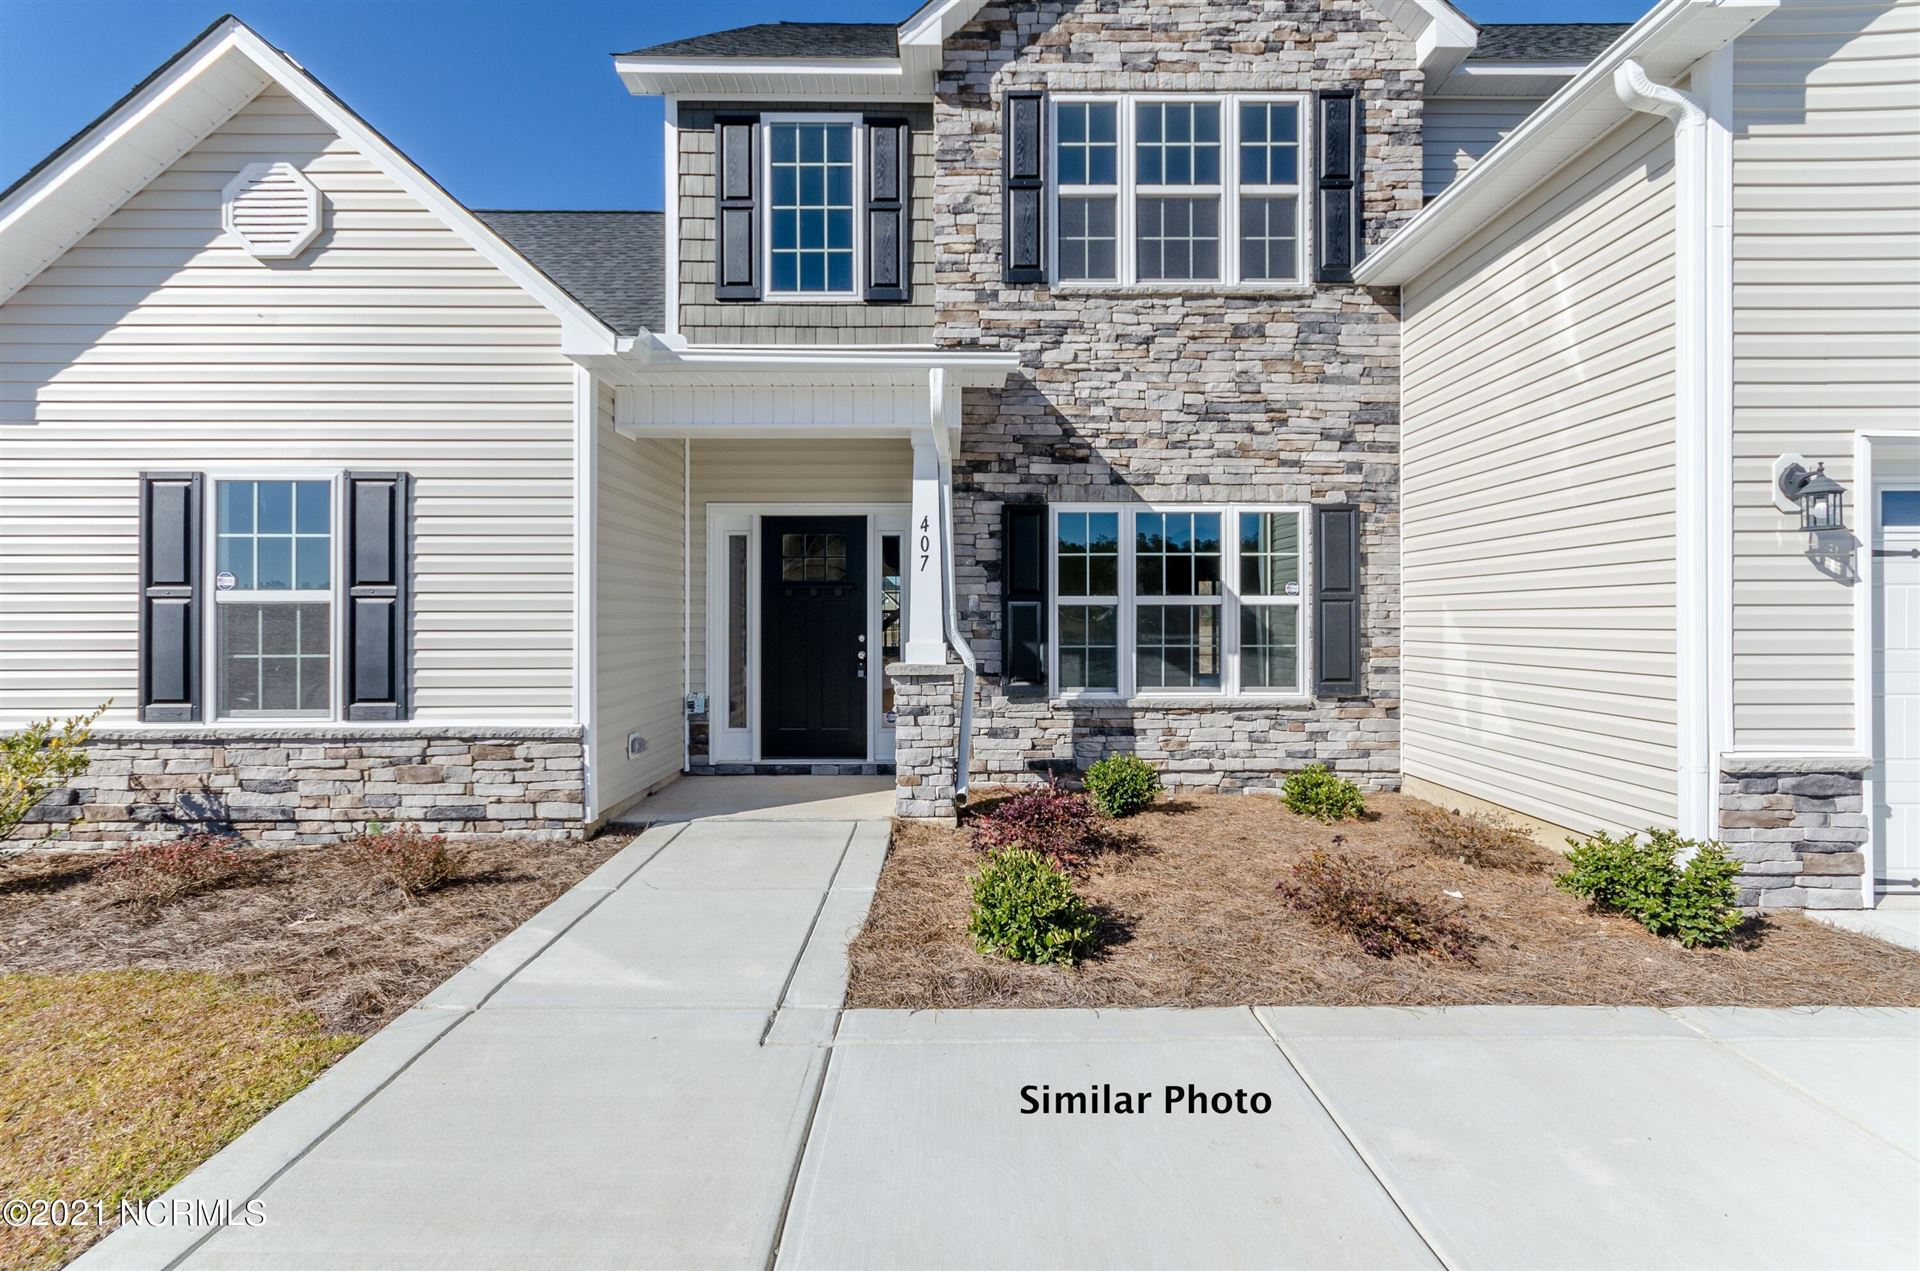 Photo of 454 Water Wagon Trail, Jacksonville, NC 28546 (MLS # 100295202)